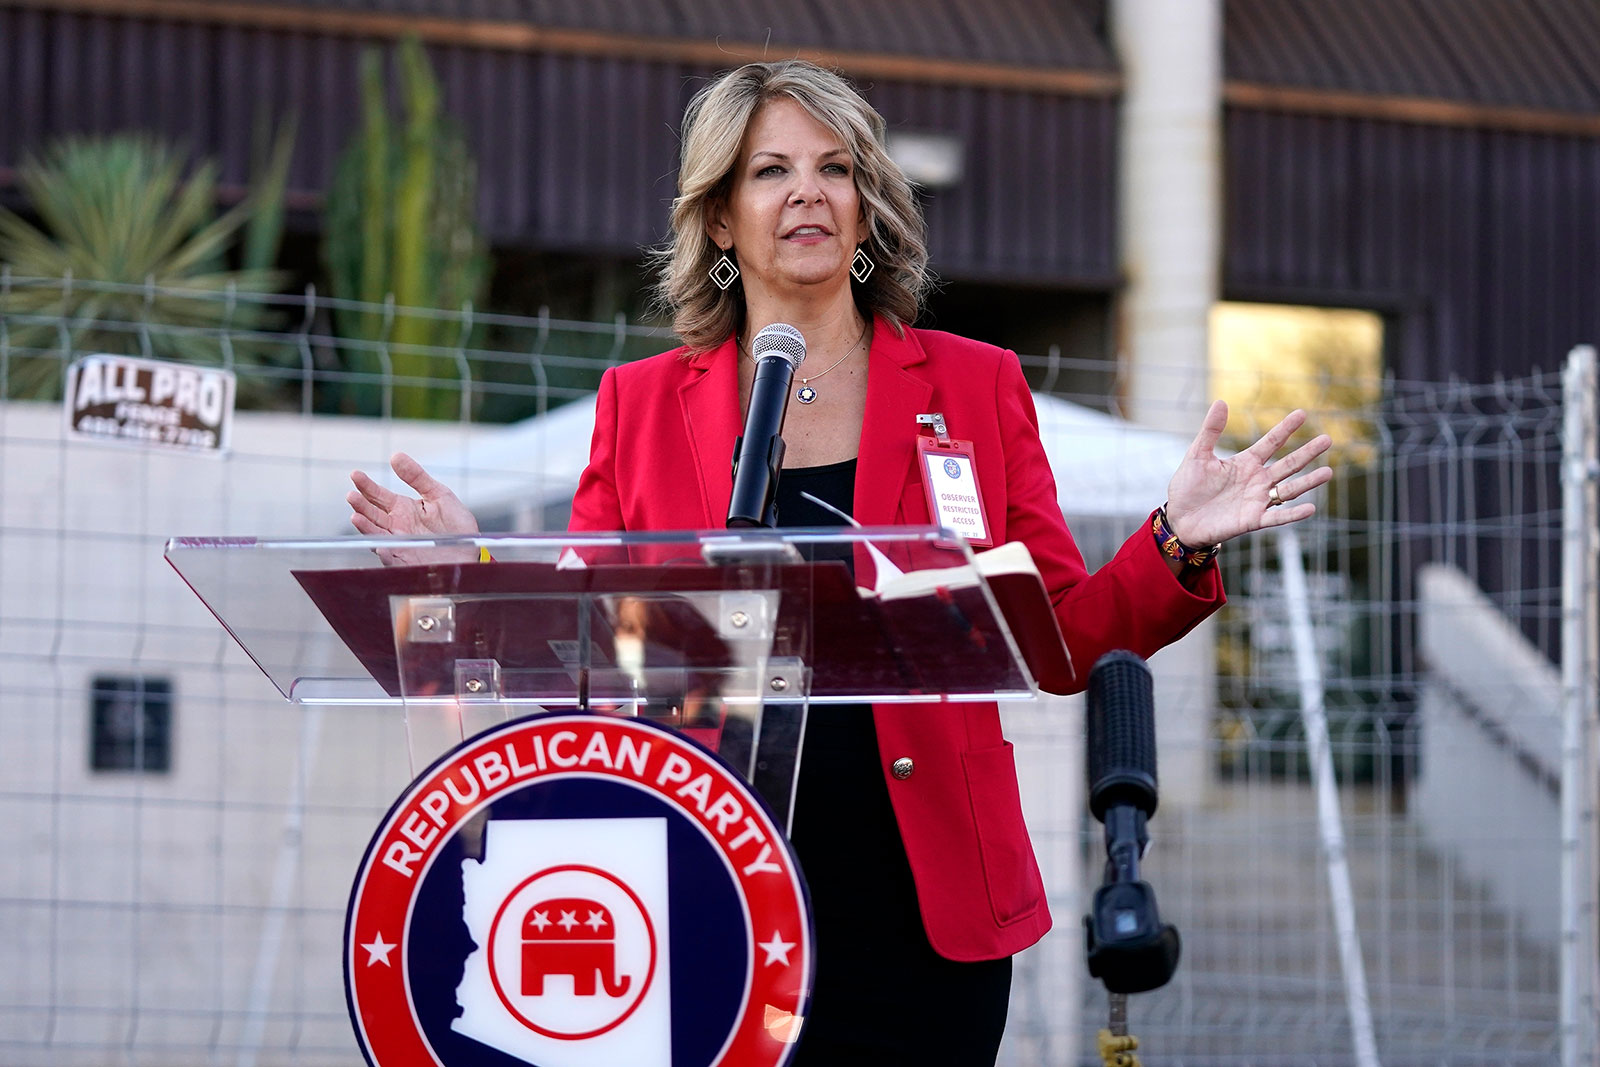 Kelli Ward holds a press conference at the Maricopa County Elections Department on Wednesday, November 18. (AP Photo/Ross D. Franklin)